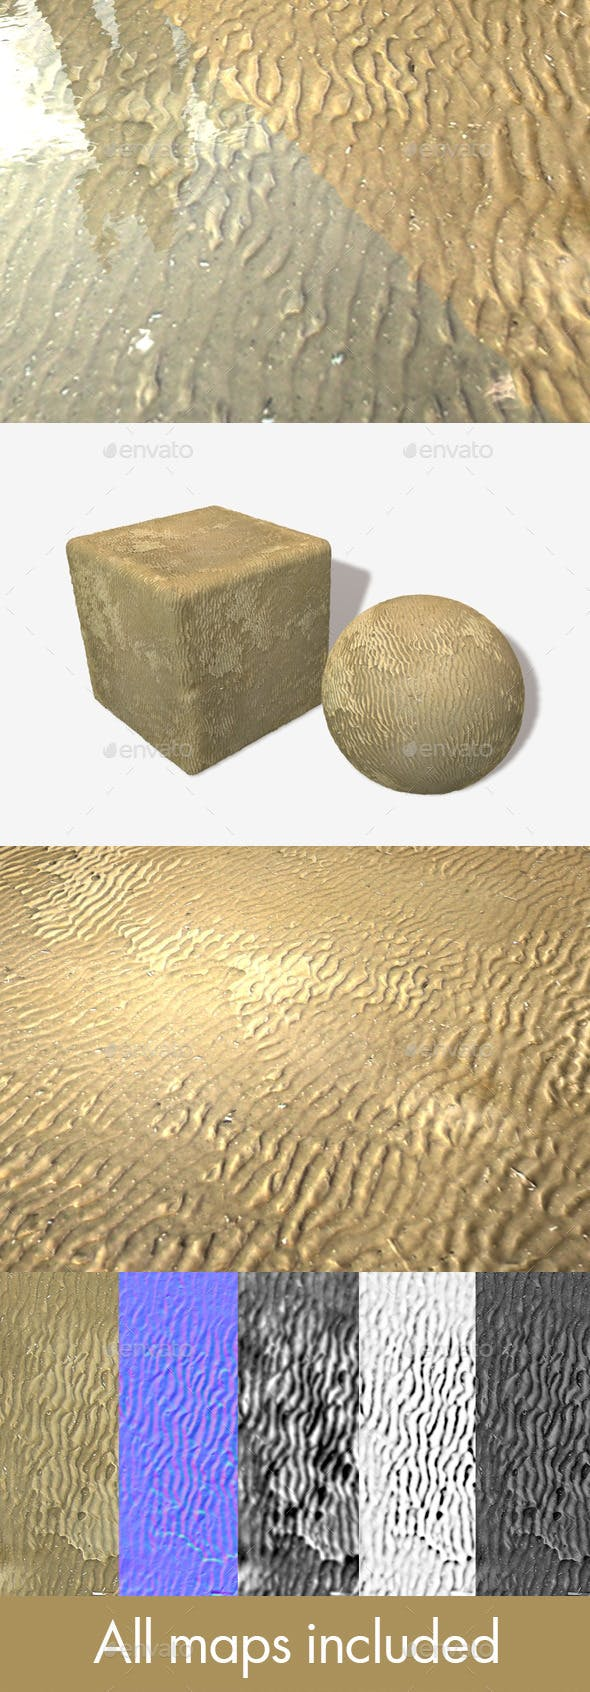 Wavy Wet Sand Seamless Texture - 3DOcean Item for Sale